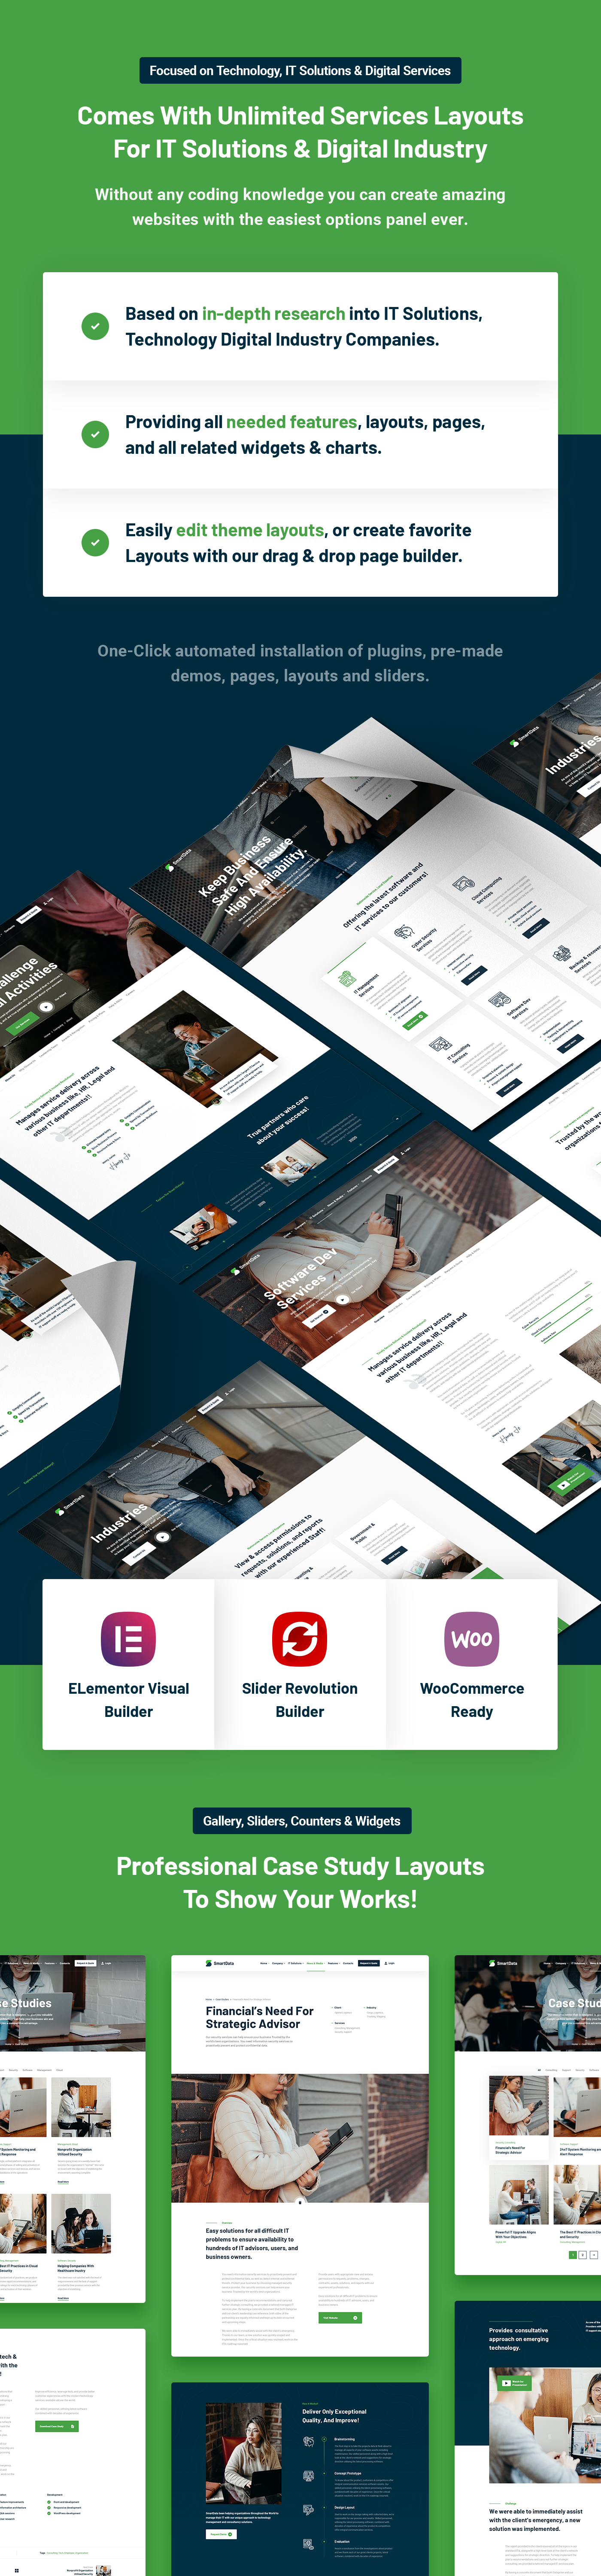 Smartdata - IT Solutions & Services WordPress Theme - 6